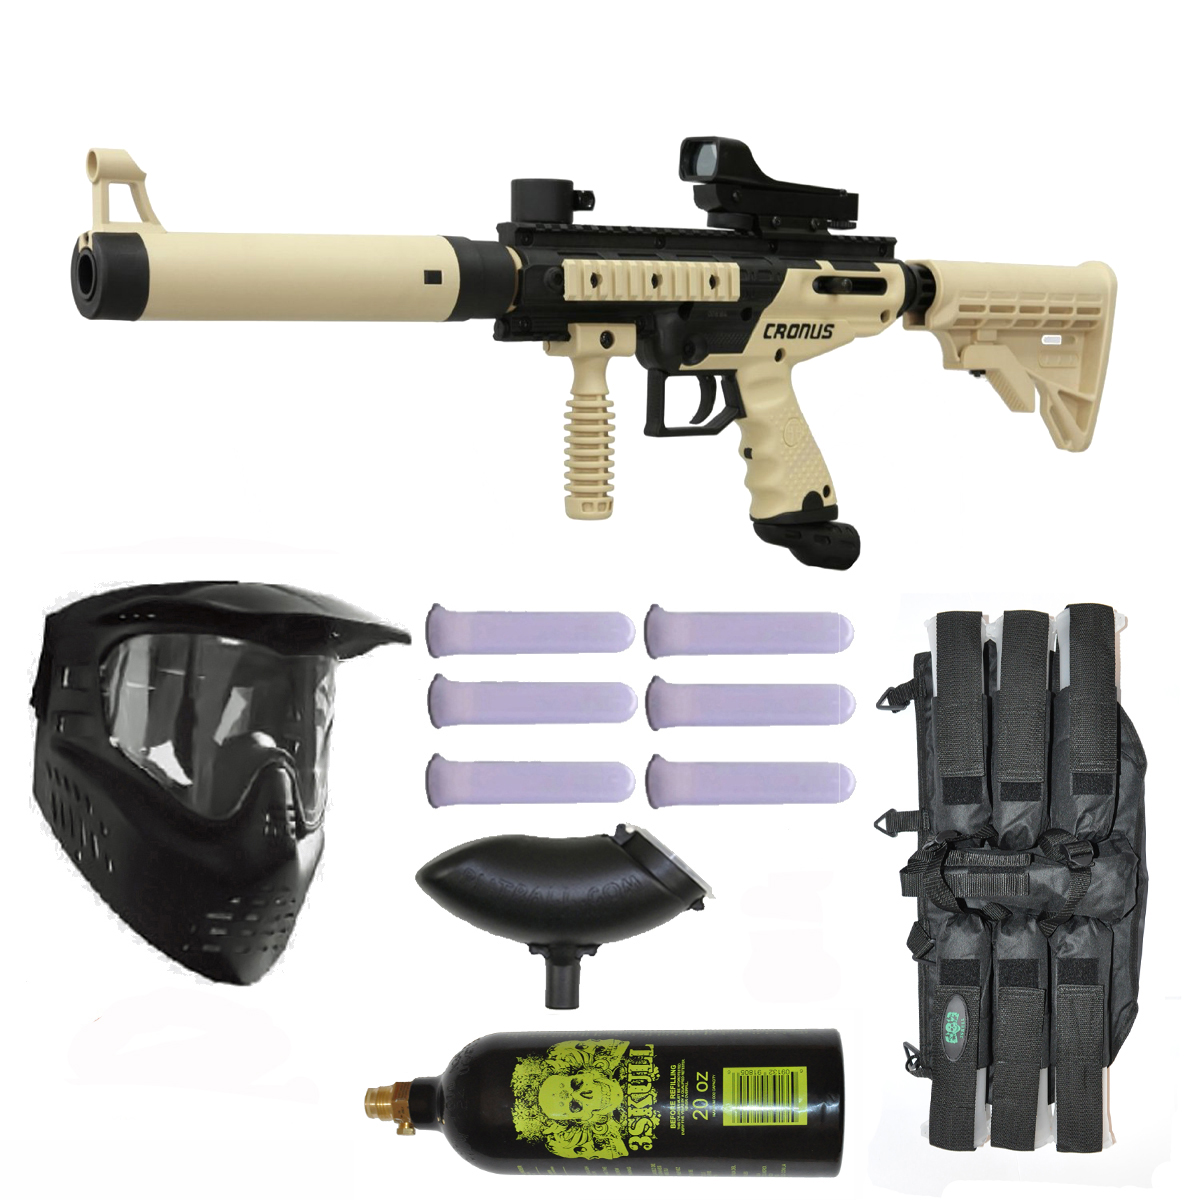 Tippmann Cronus Tactical Paintball Gun 3Skull Deluxe Set